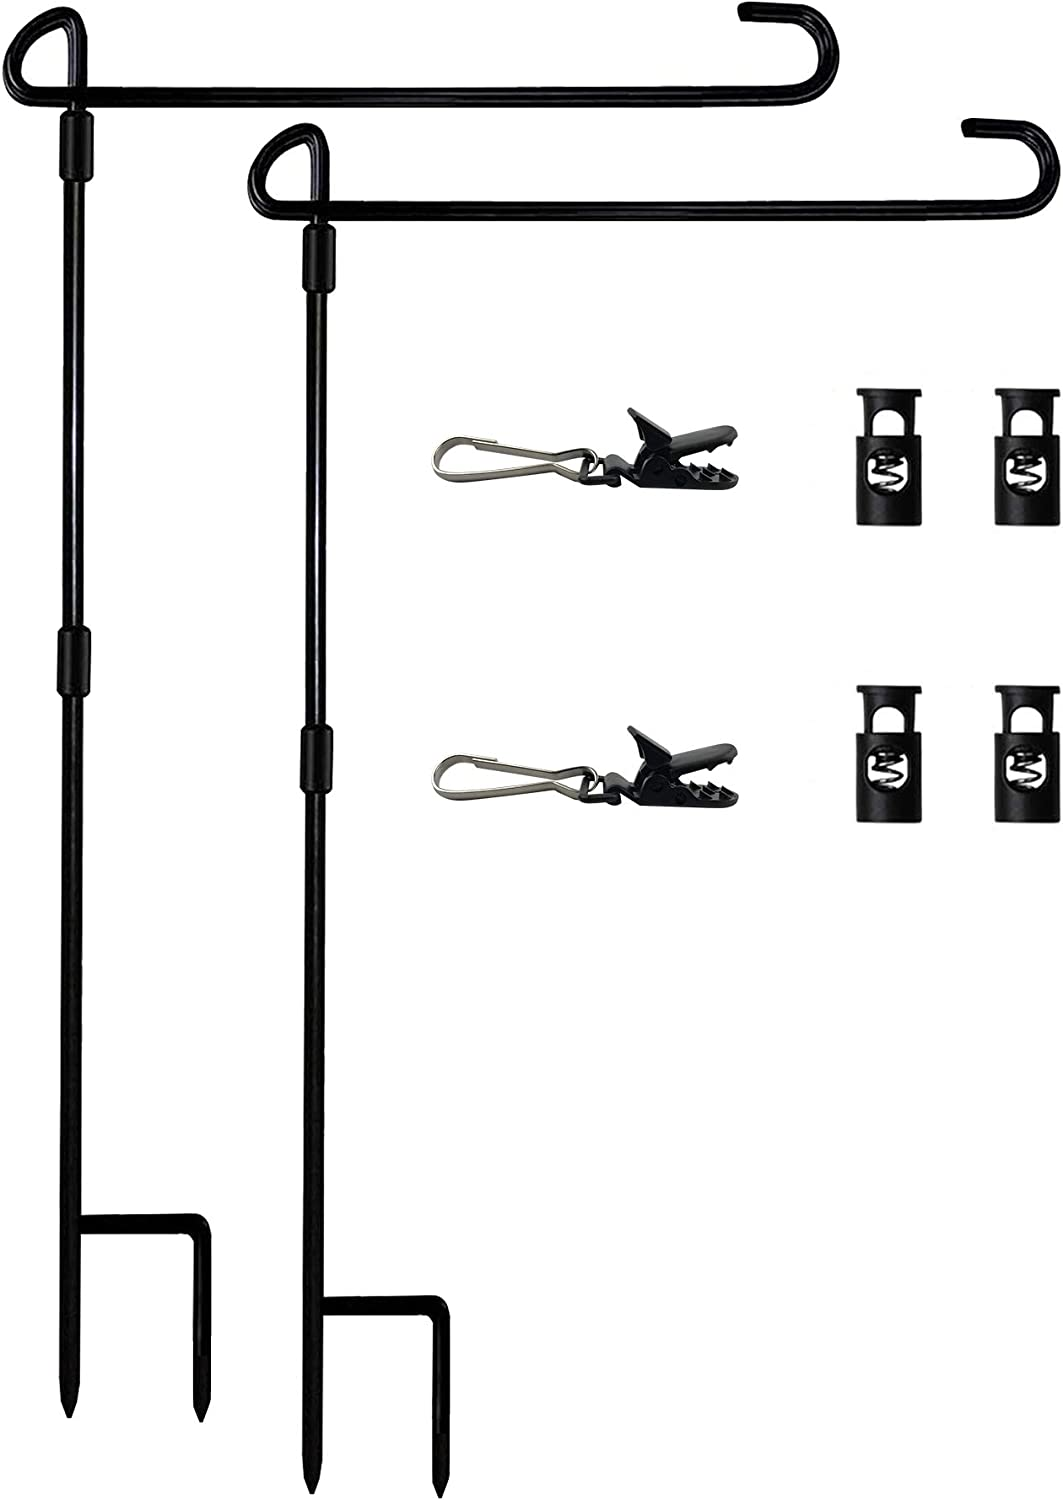 Garden Flag Stand Premium Garden Flag Pole Holder for All Seasons Yard Flags Metal Powder-Coated Weather-Proof Paint with 4 Stoppers and 2 Anti-Wind Clips 2 Pack